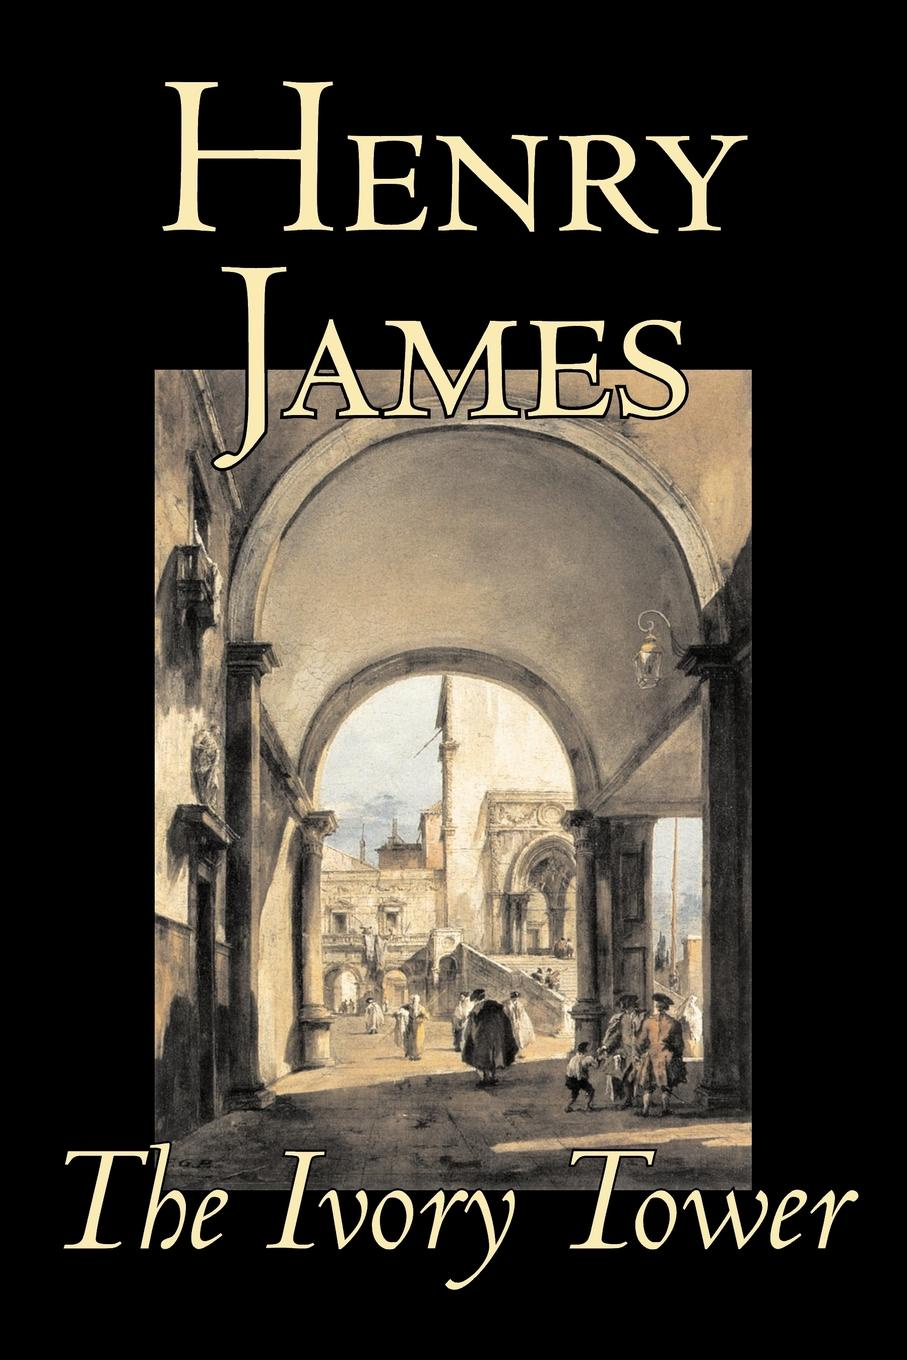 Henry James The Ivory Tower by Henry James, Fiction, Classics, Literary henry james the ivory tower by henry james fiction classics literary